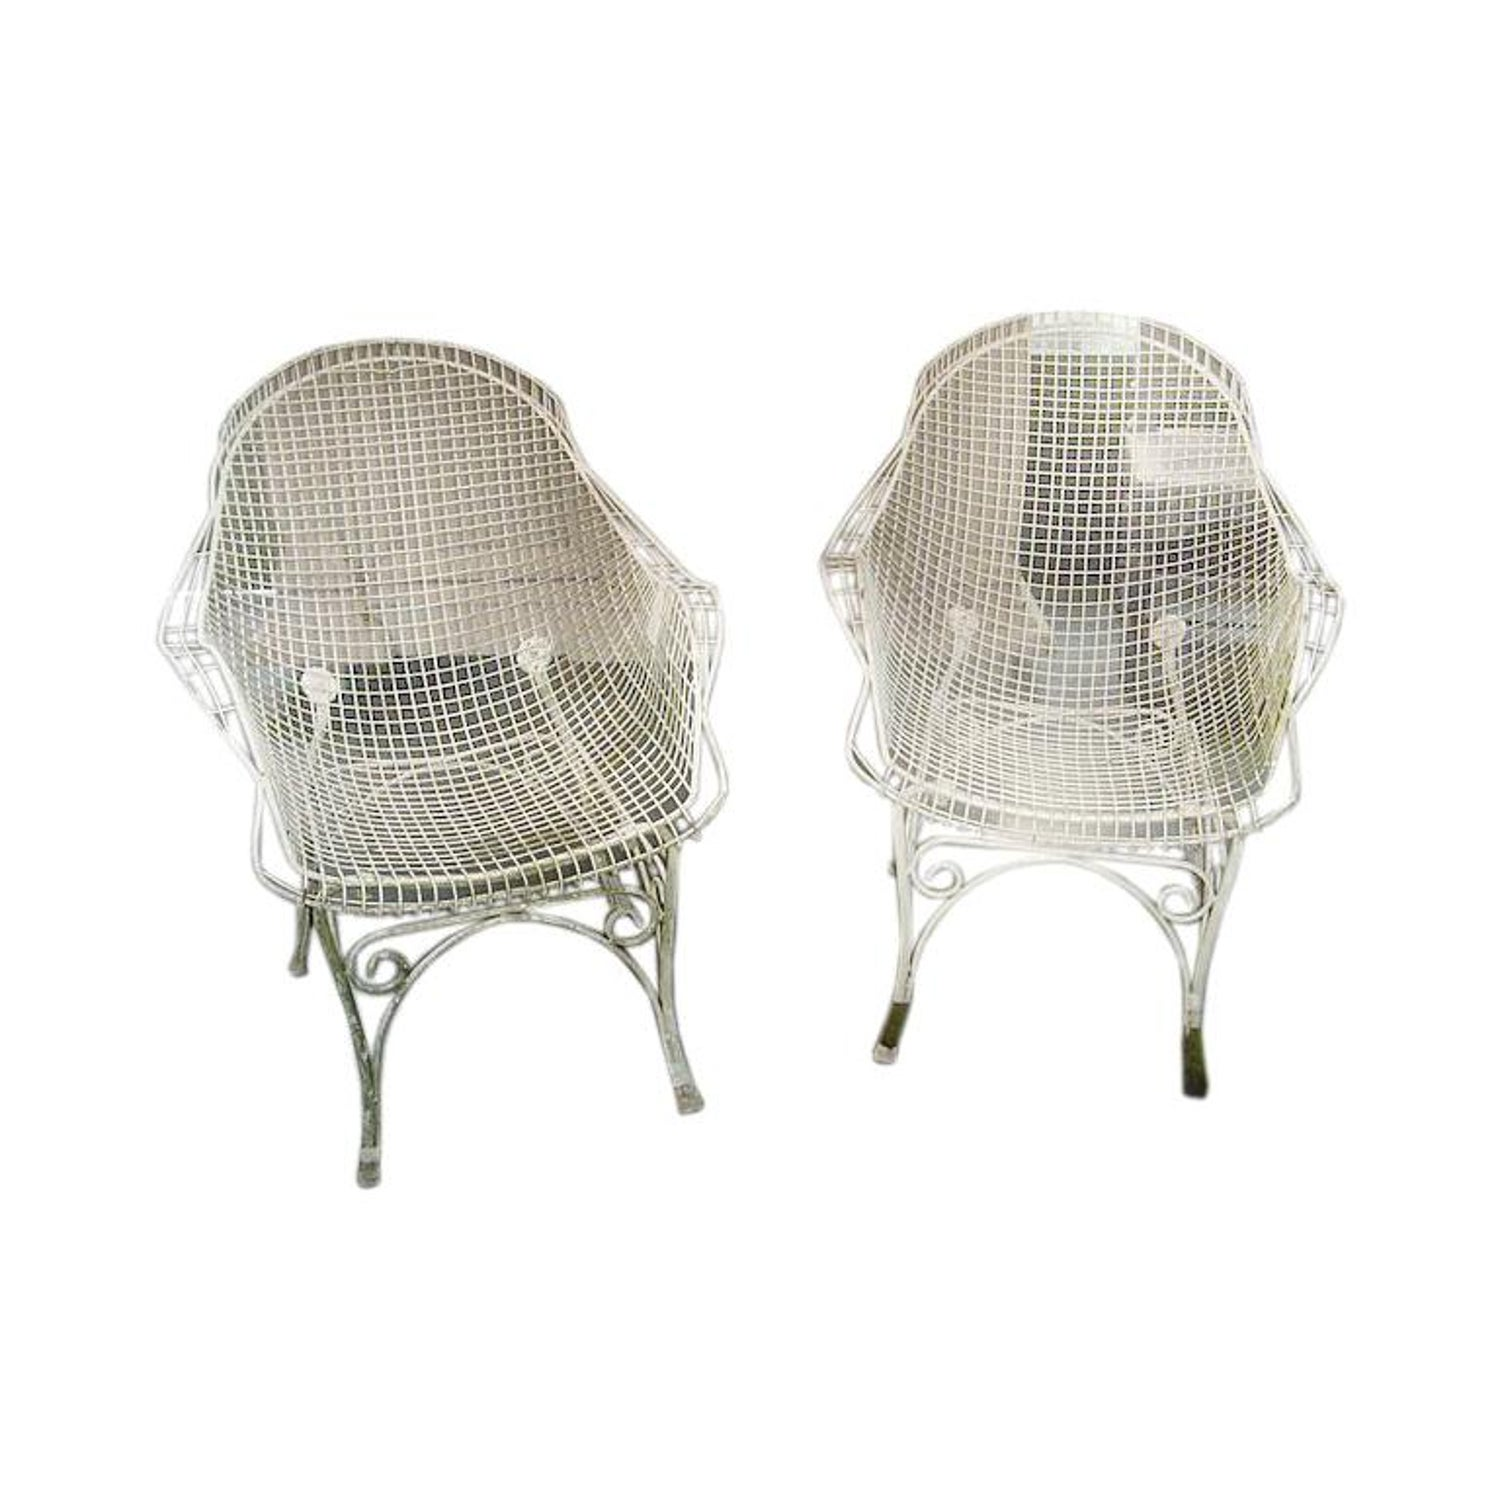 Pair Of Vintage White Wire Mesh Garden Chairs France C 1960s For At 1stdibs